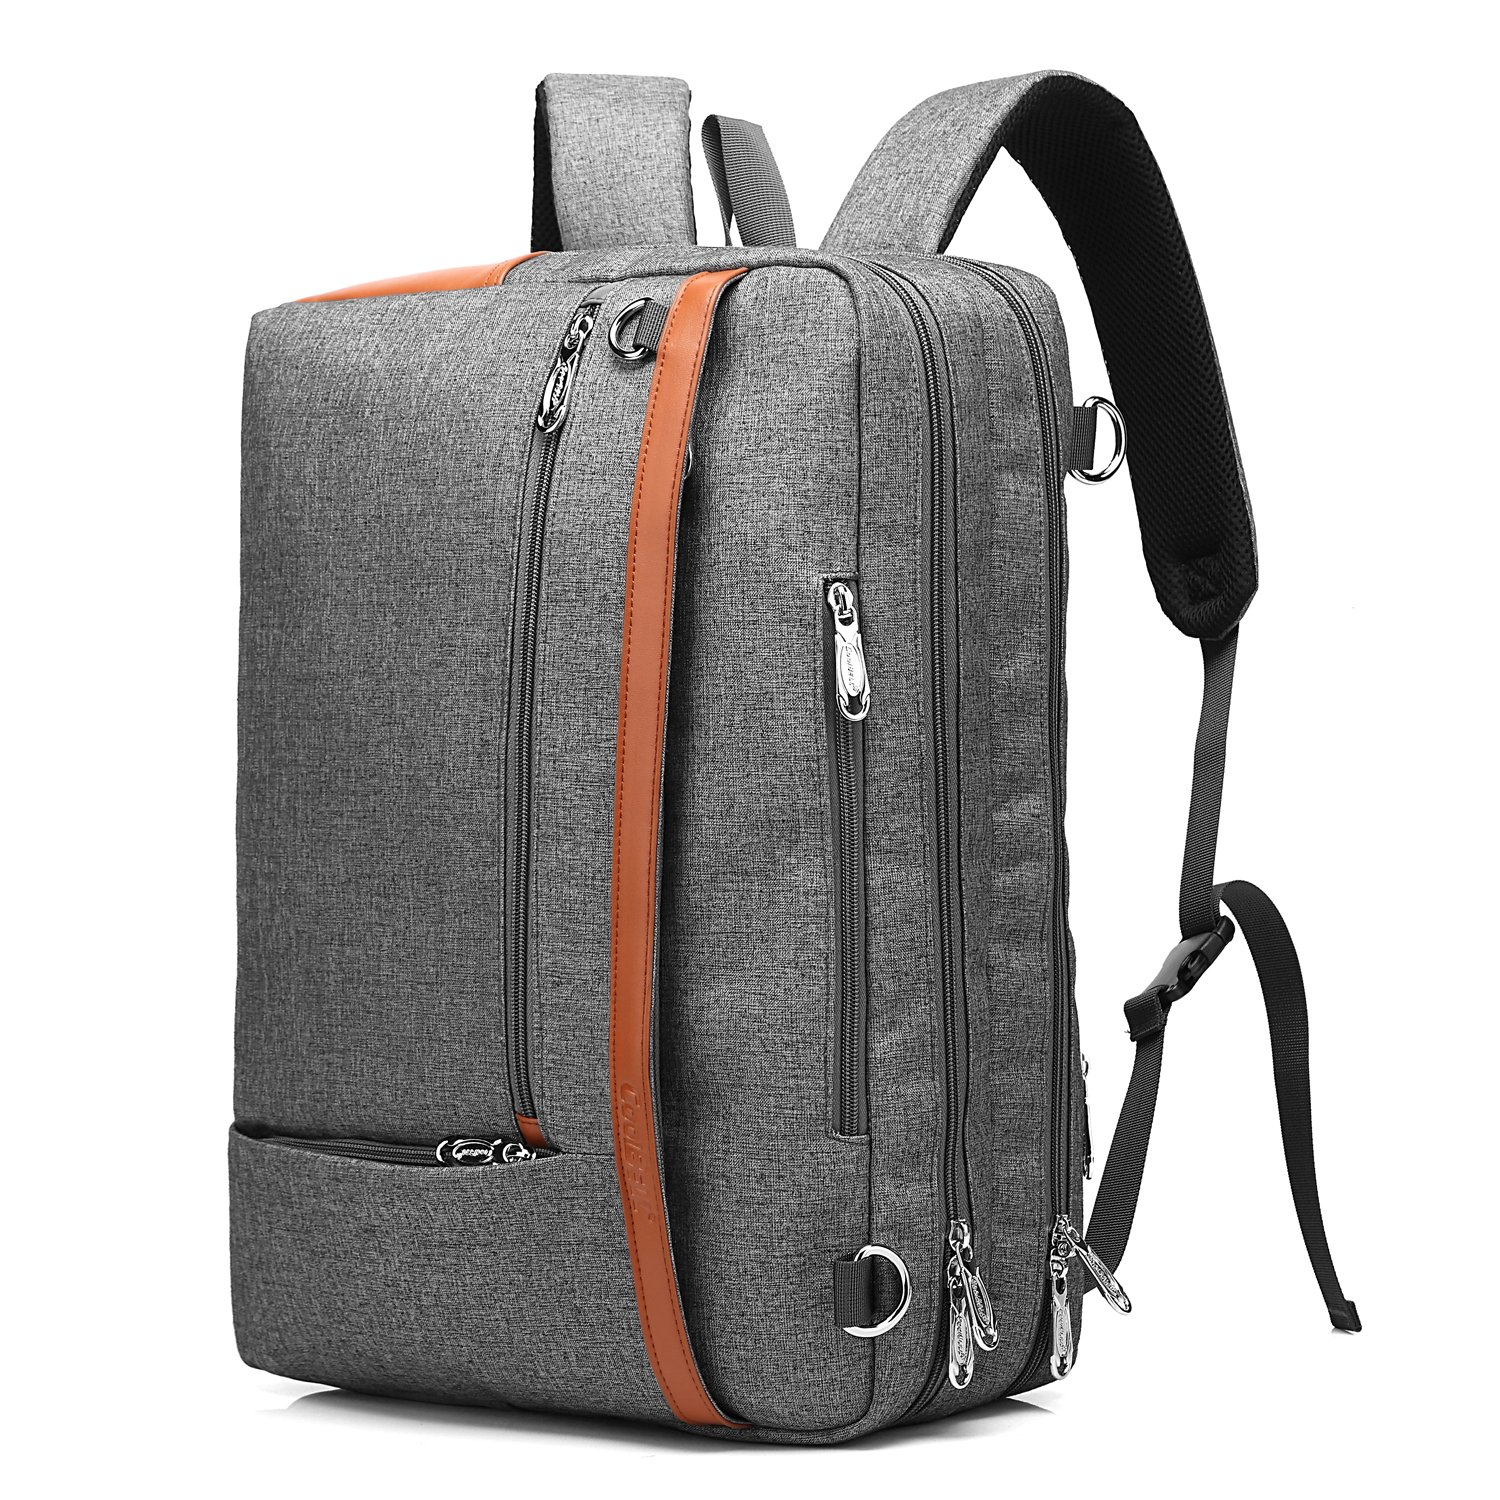 CoolBELL Convertible Backpack Shoulder bag Messenger Bag Laptop Case Business Briefcase Leisure Handbag Multi-functional Travel Rucksack Fits 17.3 Inch Laptop For Men/Women/Travel (New Grey) by CoolBELL